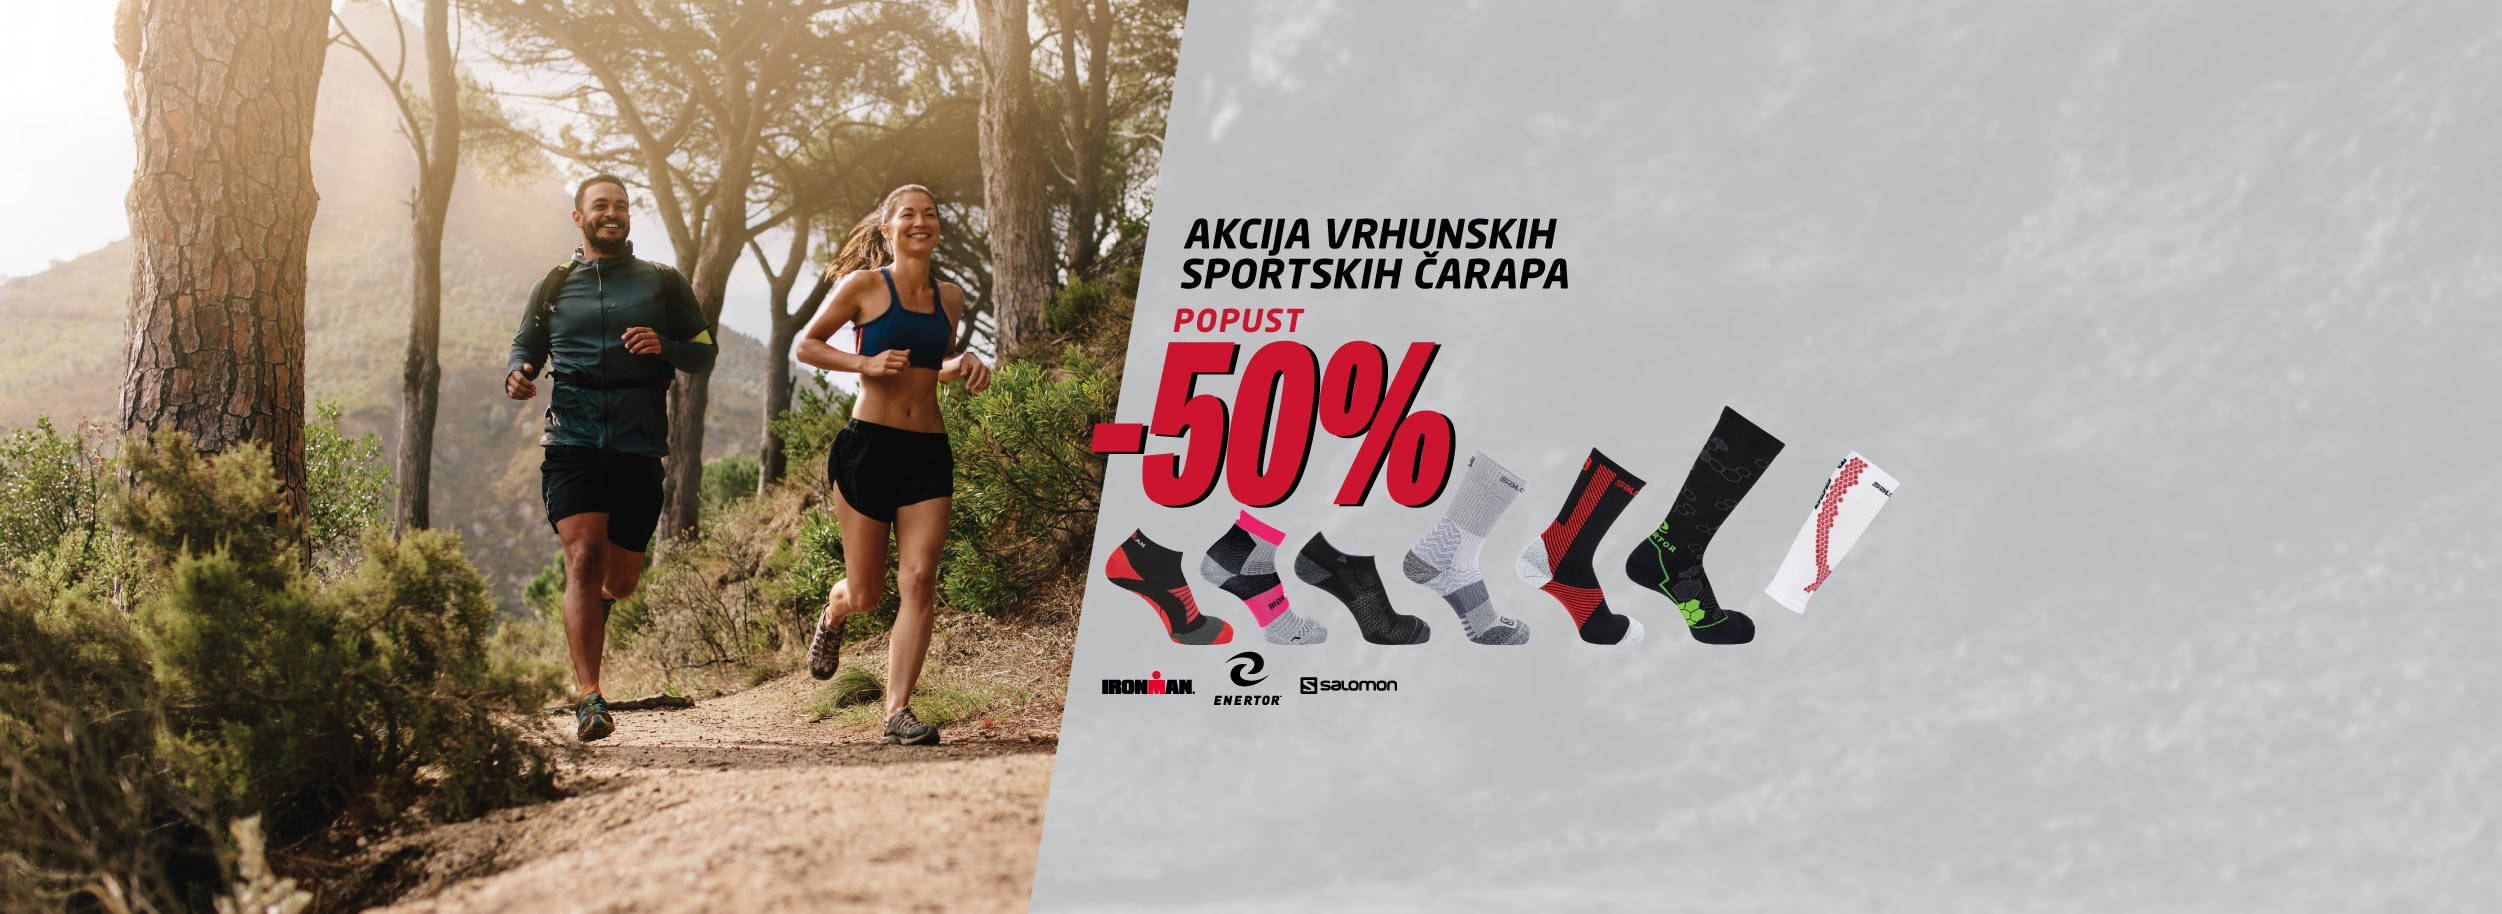 Vrhunske čarape do -50%